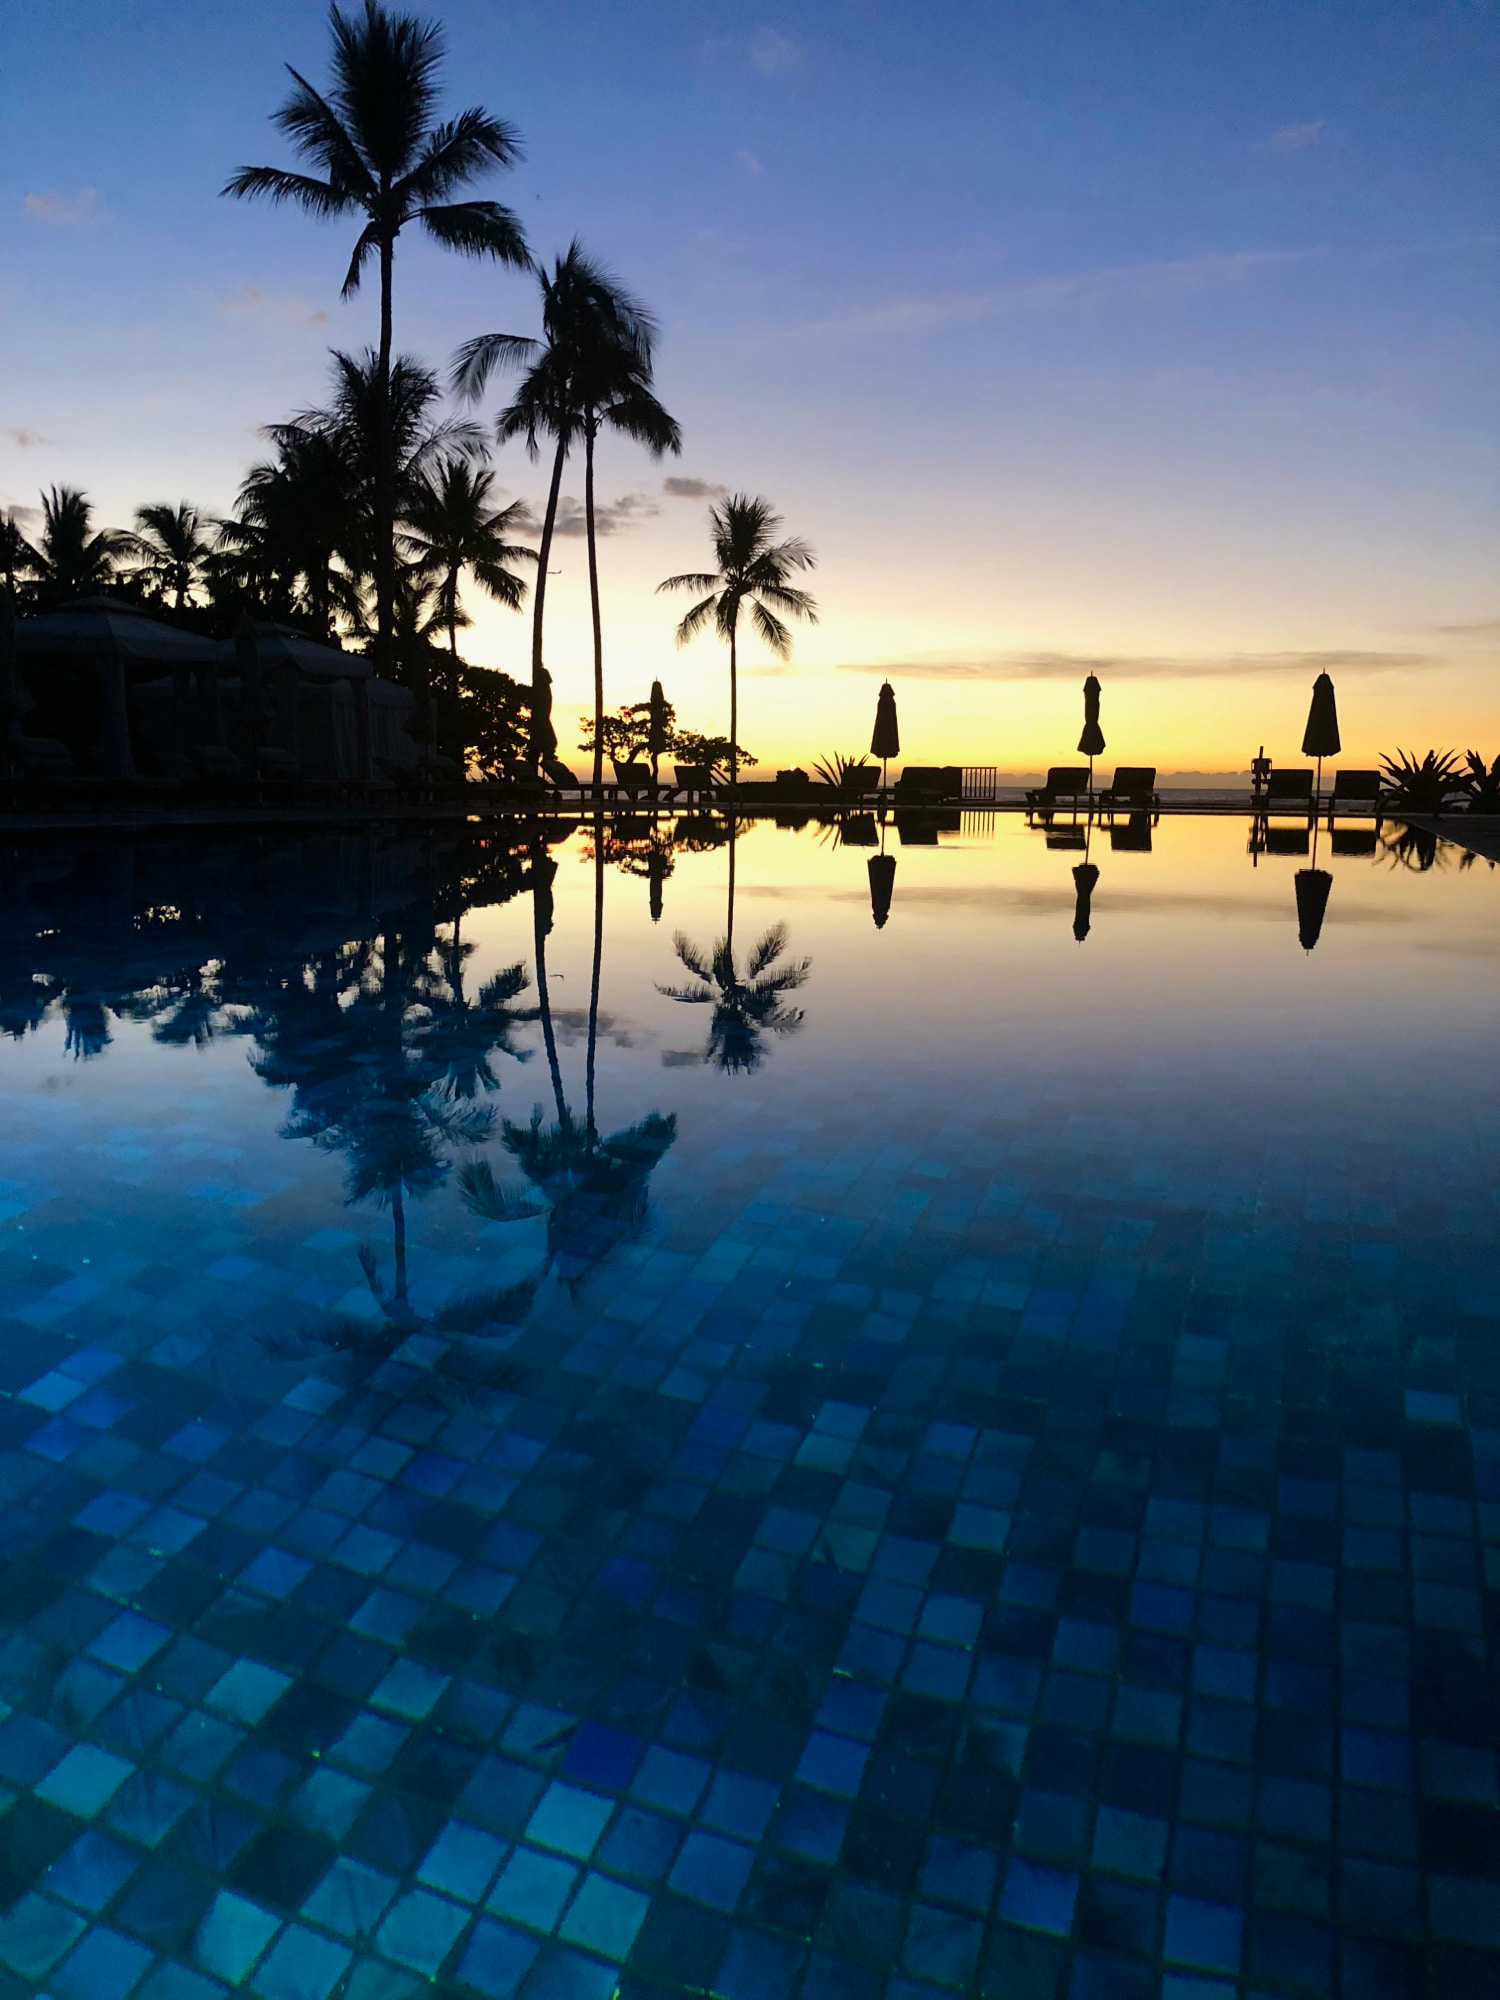 sunset over the pool at the Four Seasons Resort Hualālai